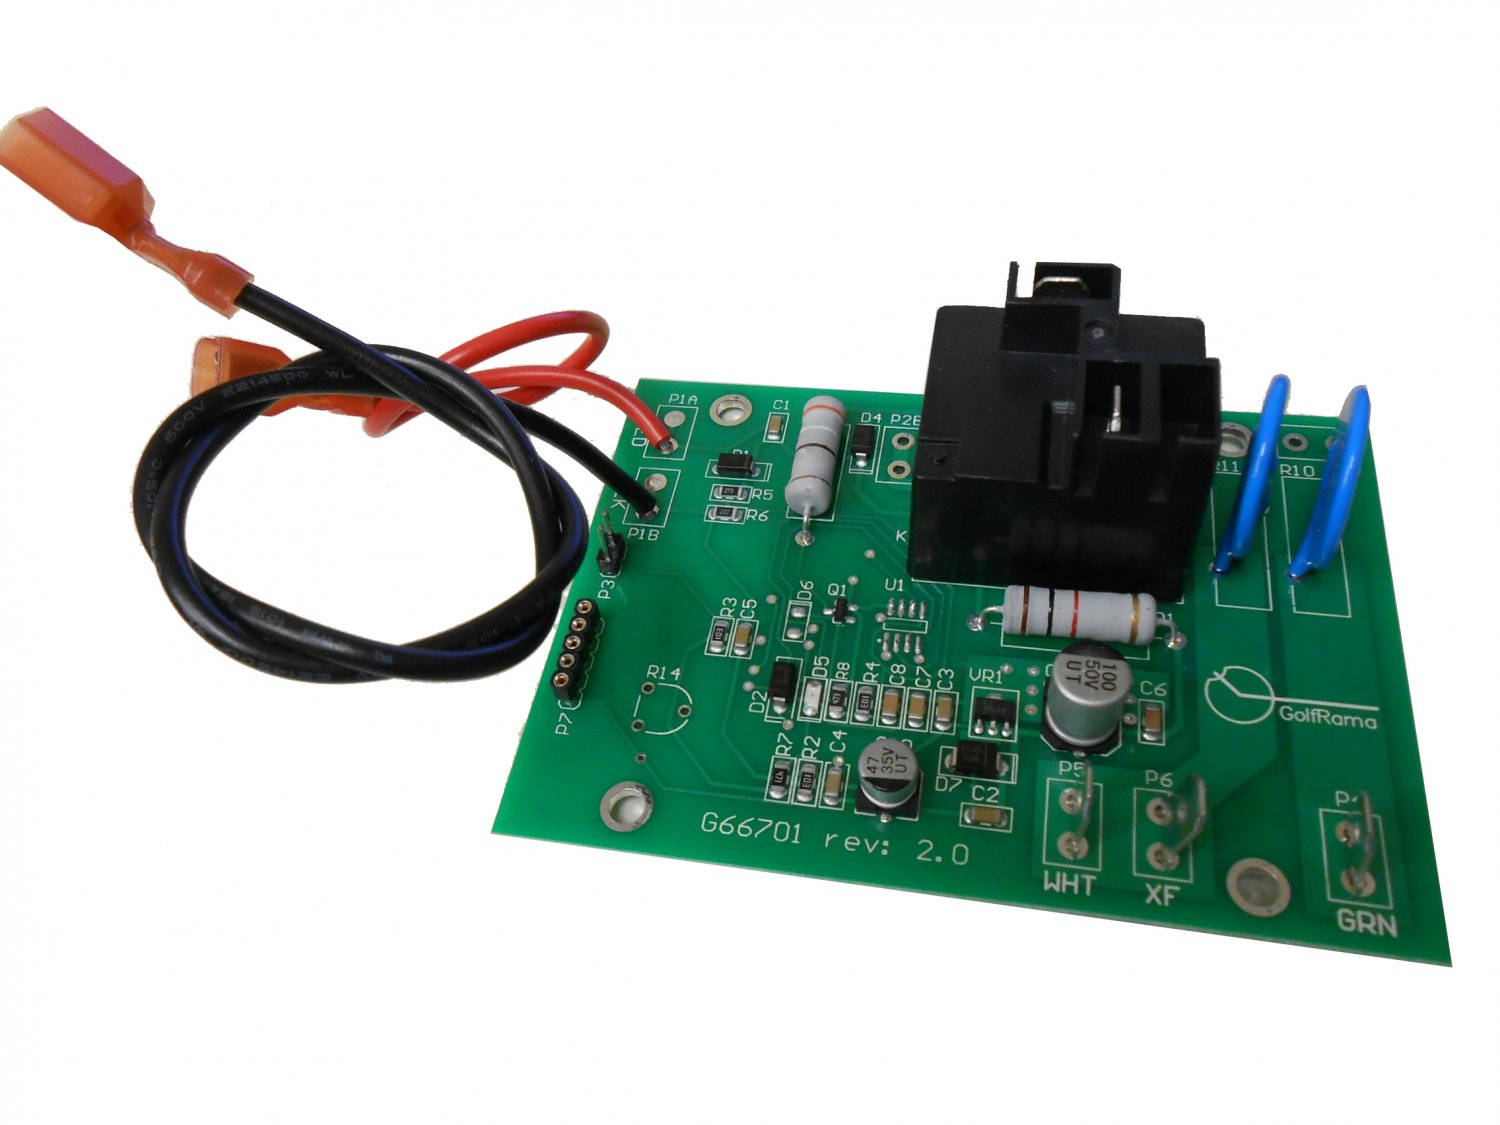 48 Volt Golf Cart Charger Wiring Diagram Ezgo Golf Cart Powerwise Charger Timer Control Input Board